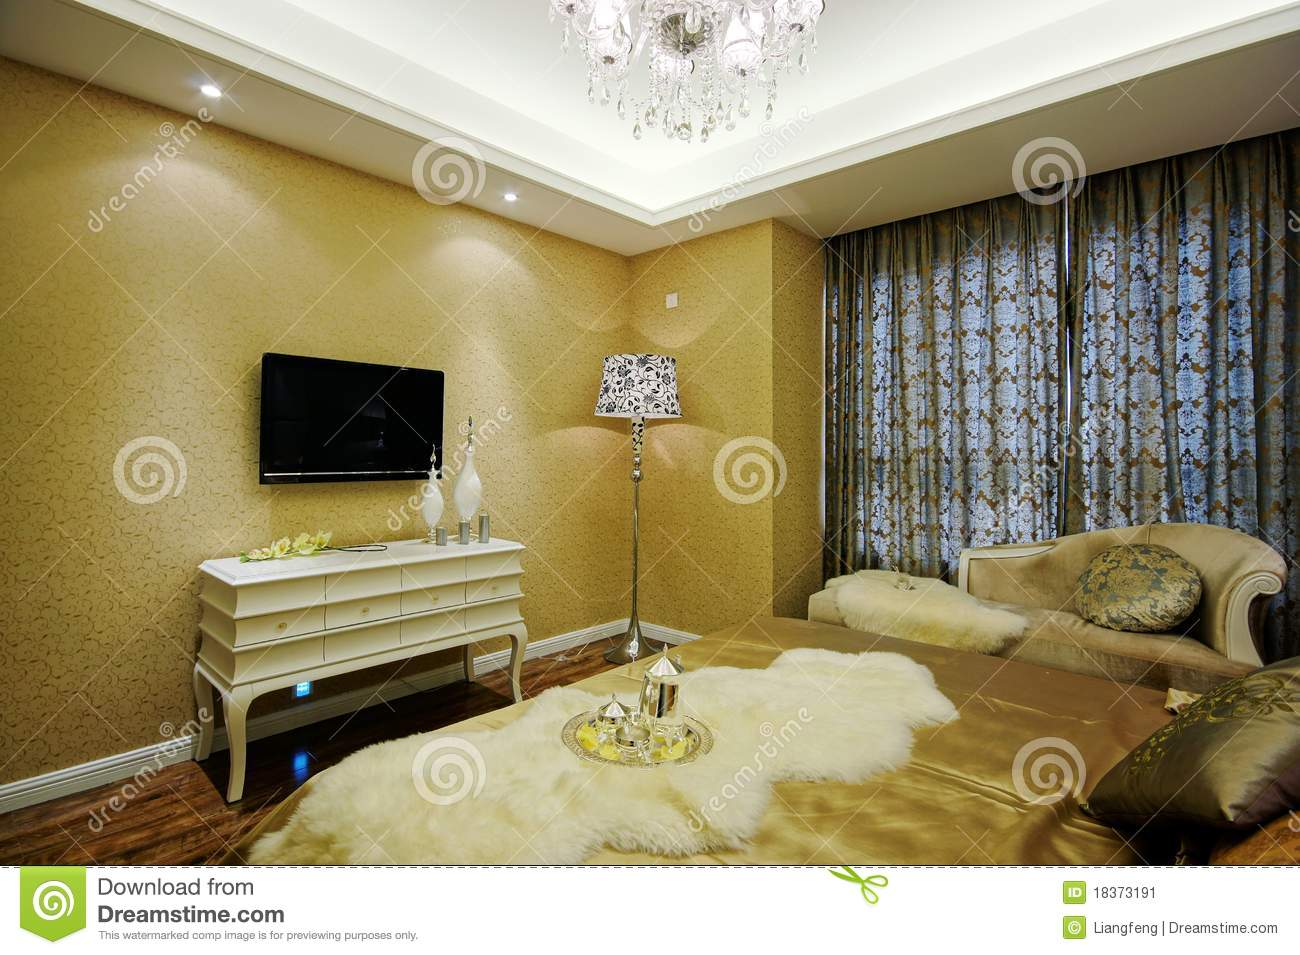 Beautiful room decoration stock image image 18373191 for Beautiful room decoration